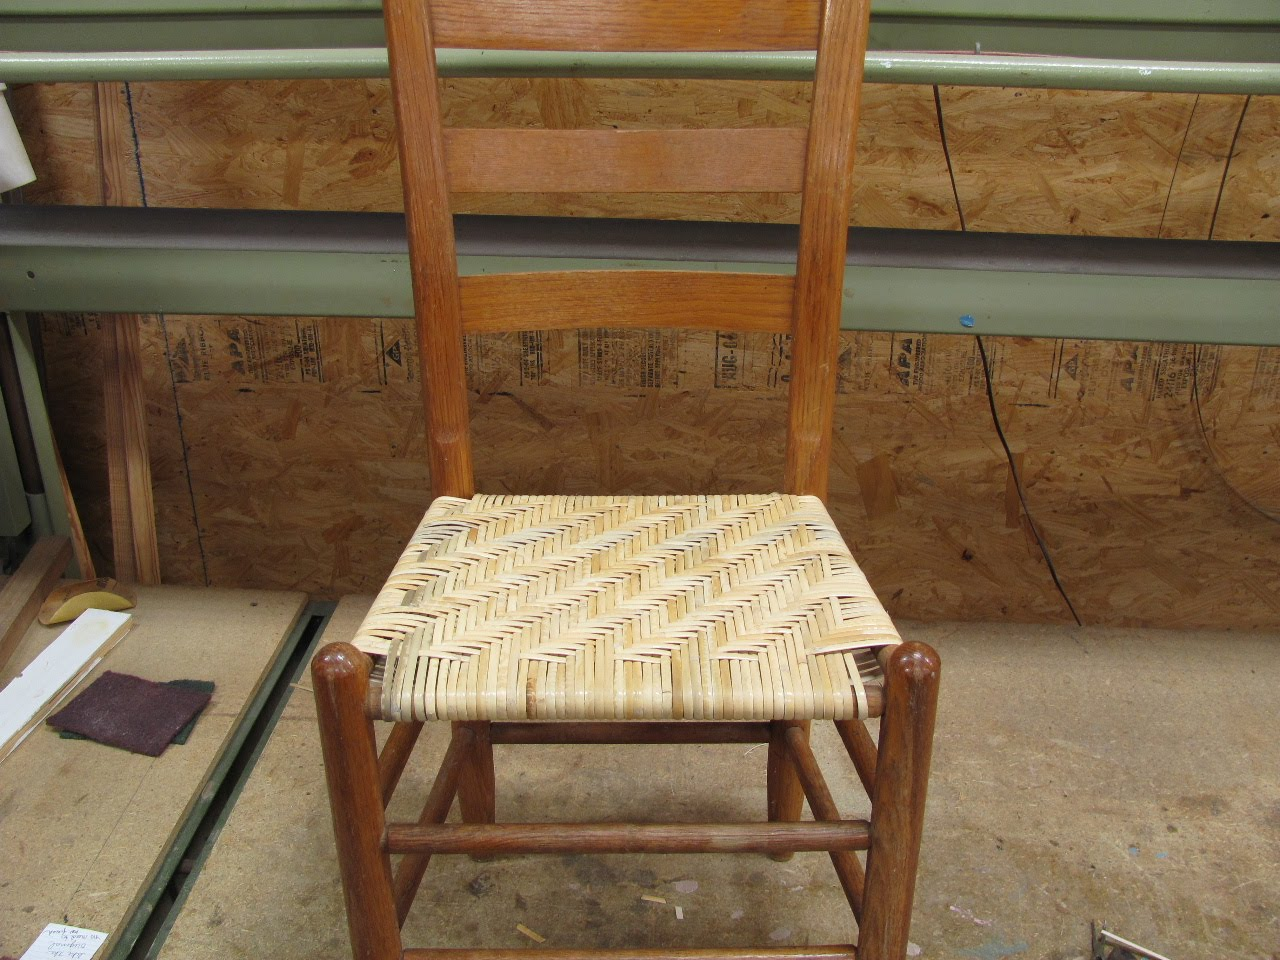 Side And Front View Of The Completed Seat.